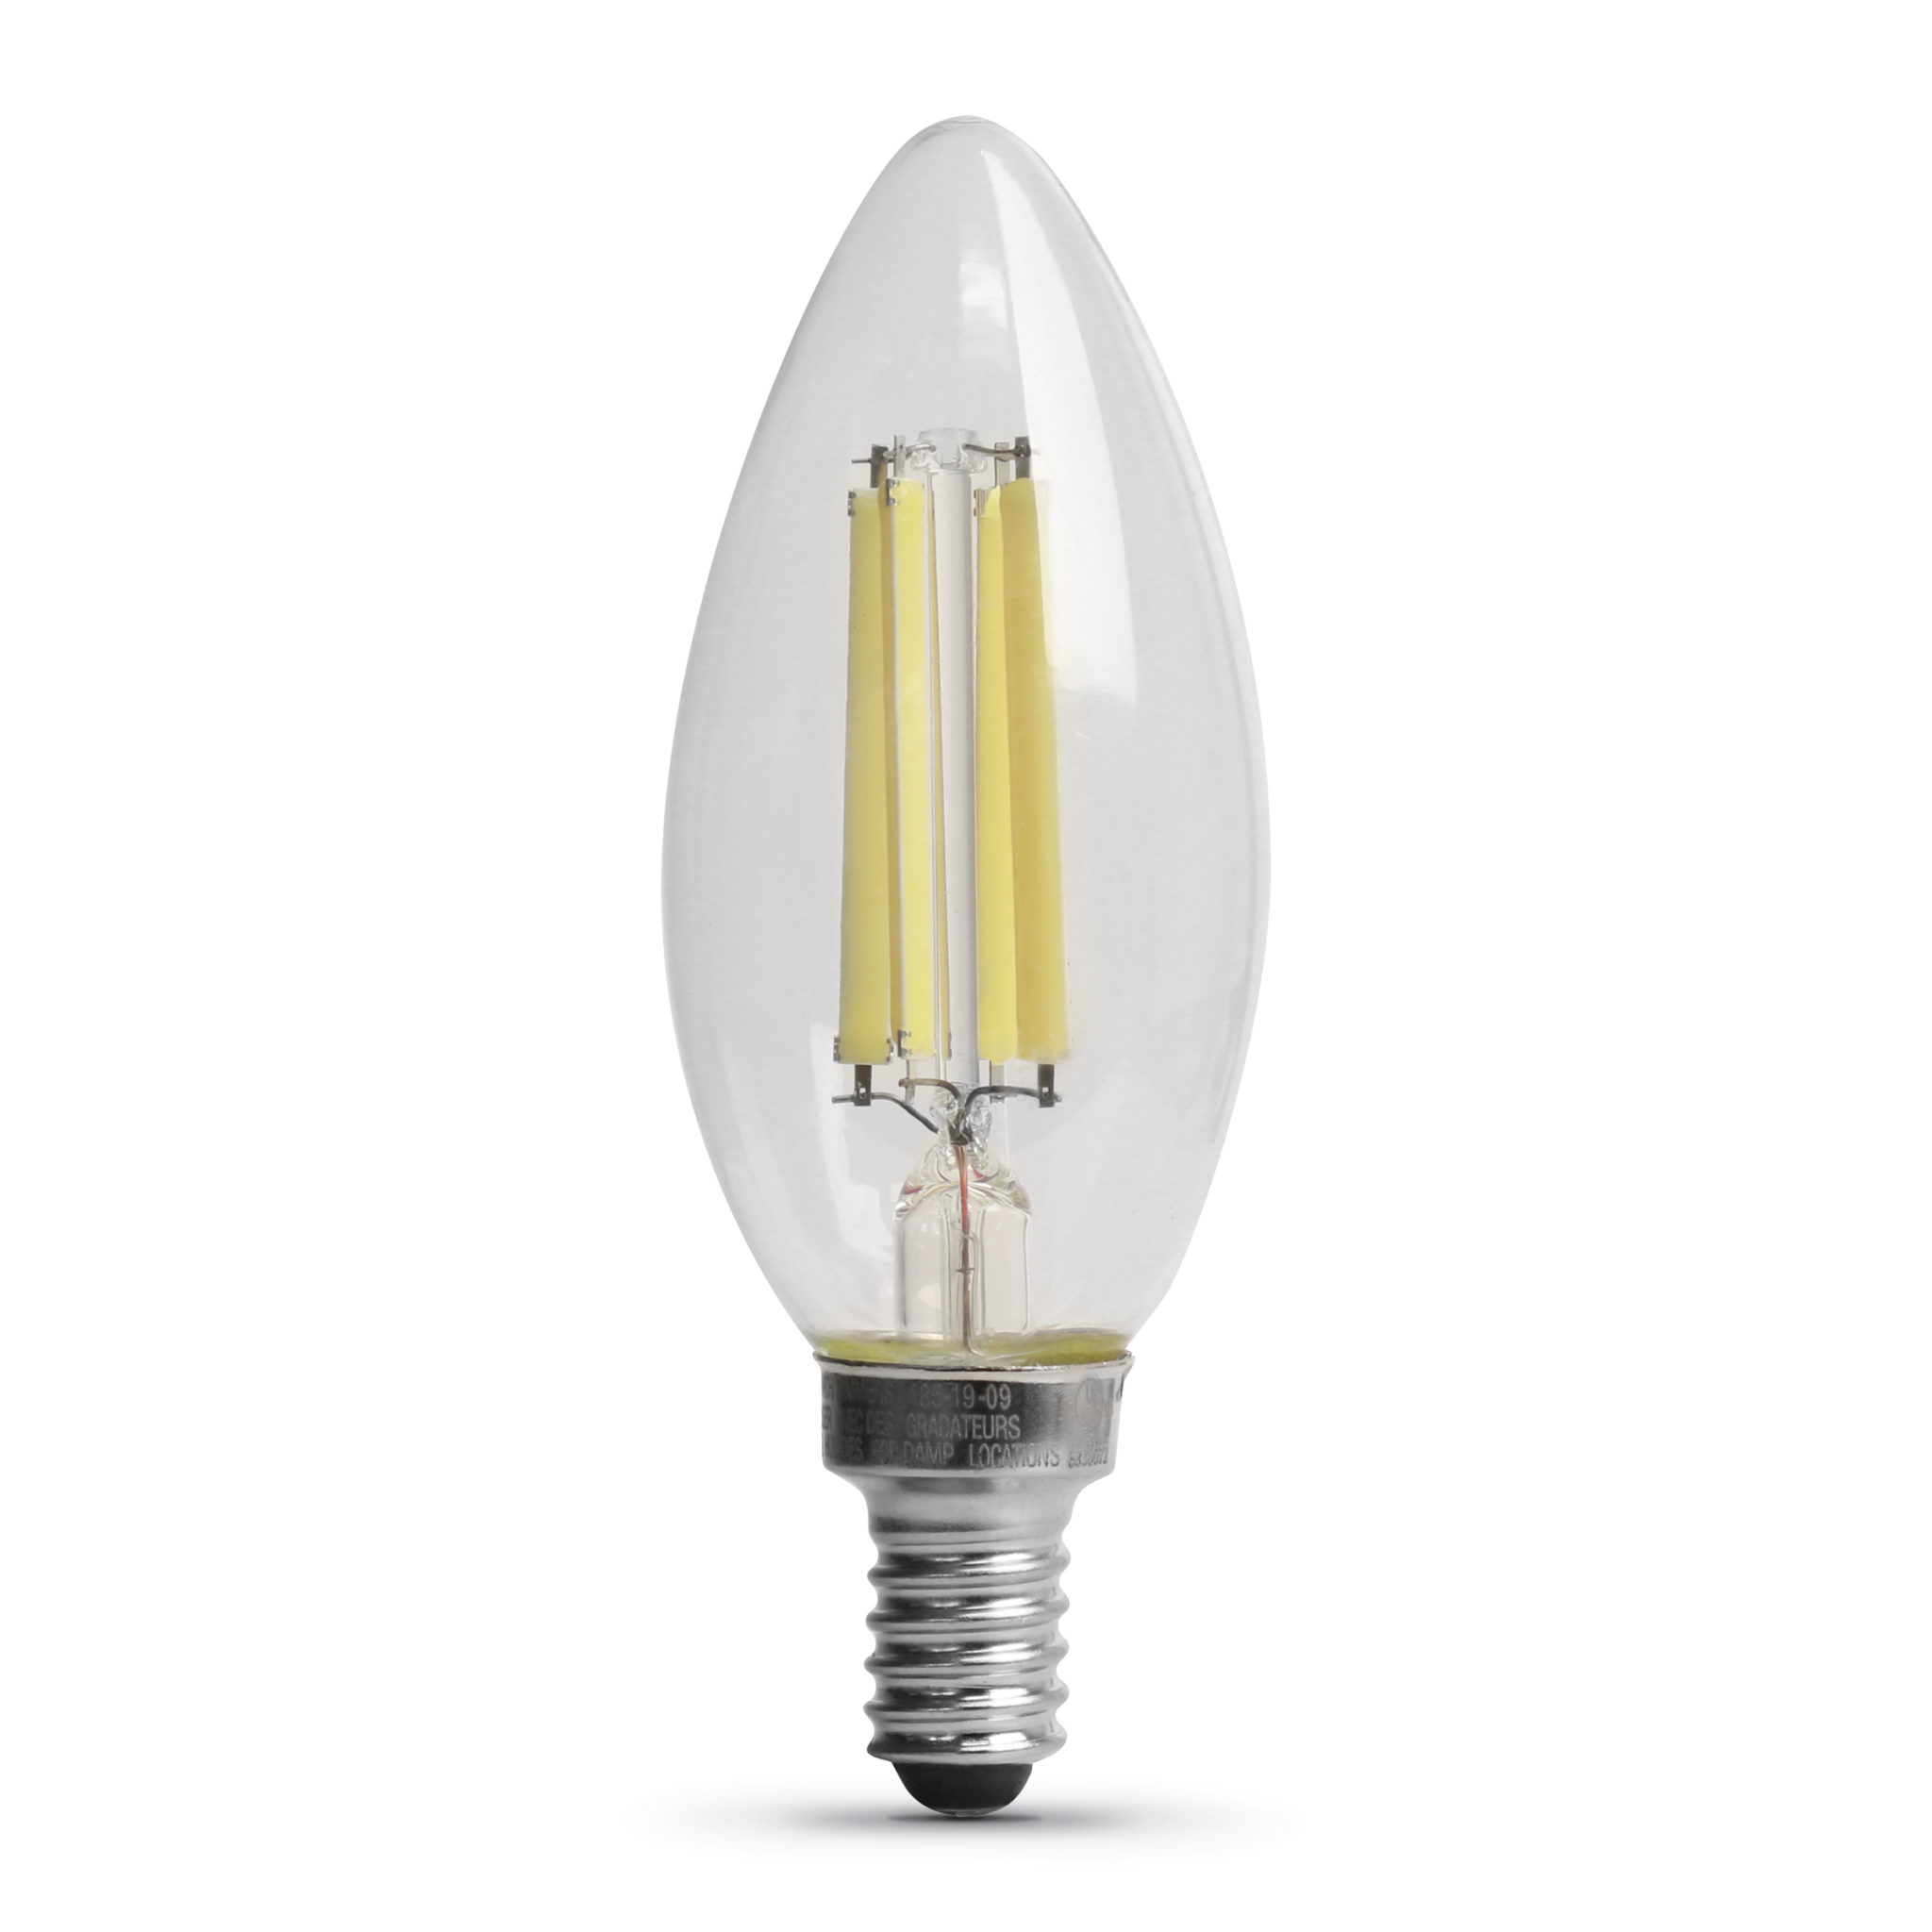 75 Watt Equivalent Daylight Chandelier Glass Filament LED